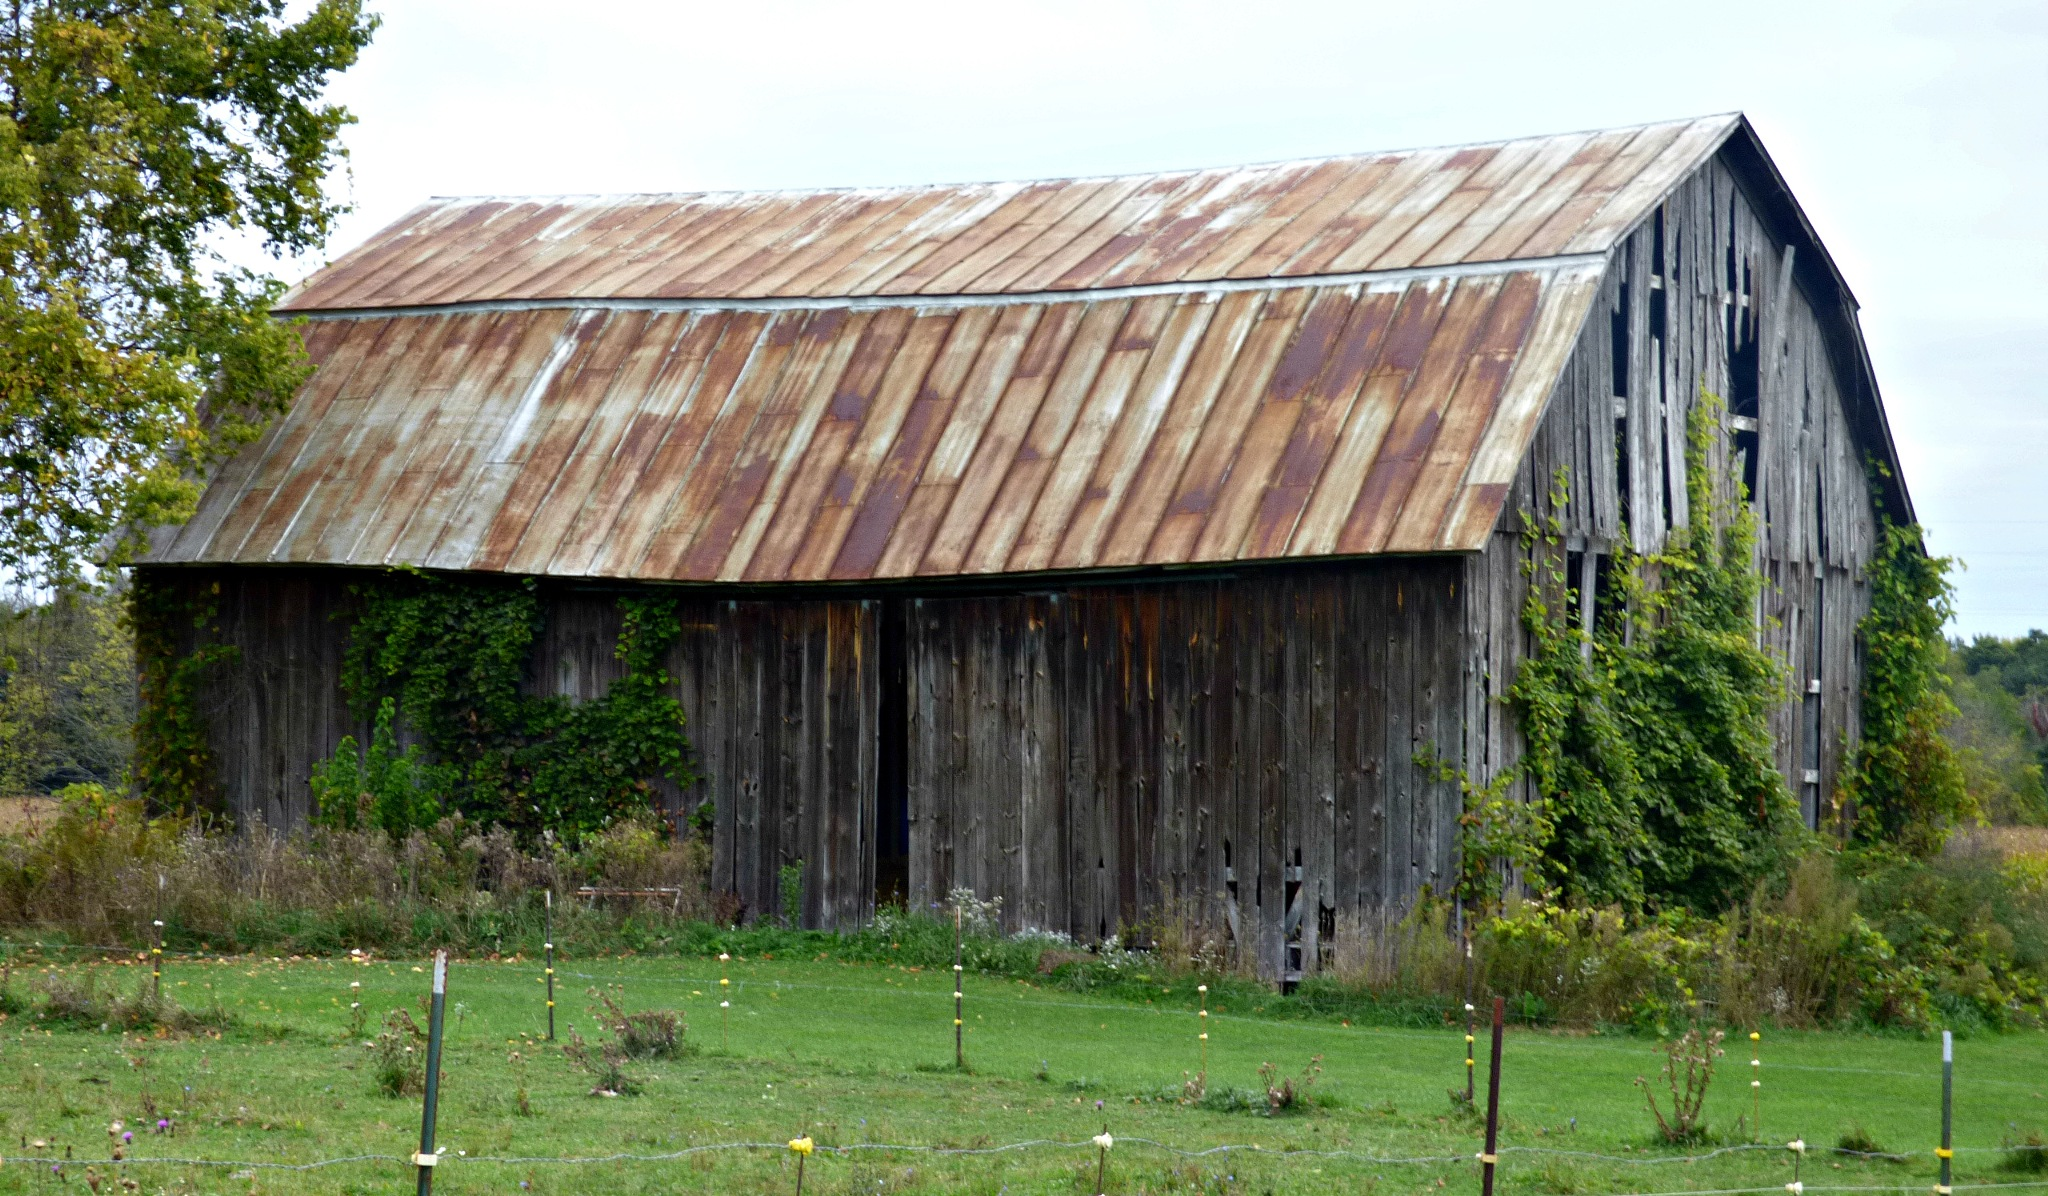 A Little Barn With That Rust by ScottWardPhotography